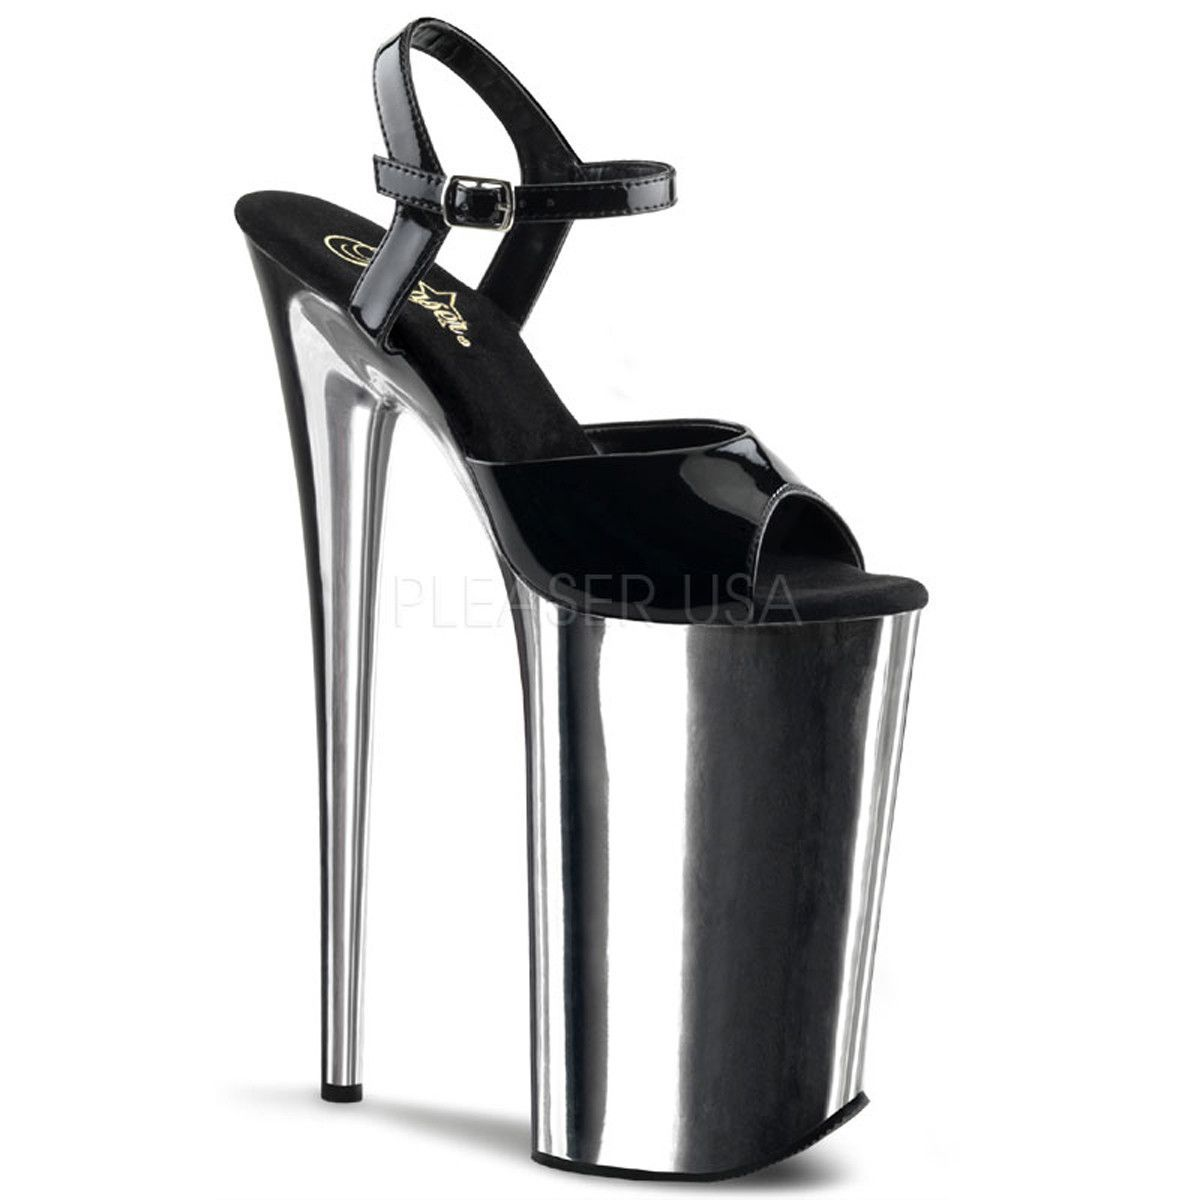 f01baed87009 PLEASER BEYOND-009 Black-Silver Chrome Extreme 10 Inch High Heels ...